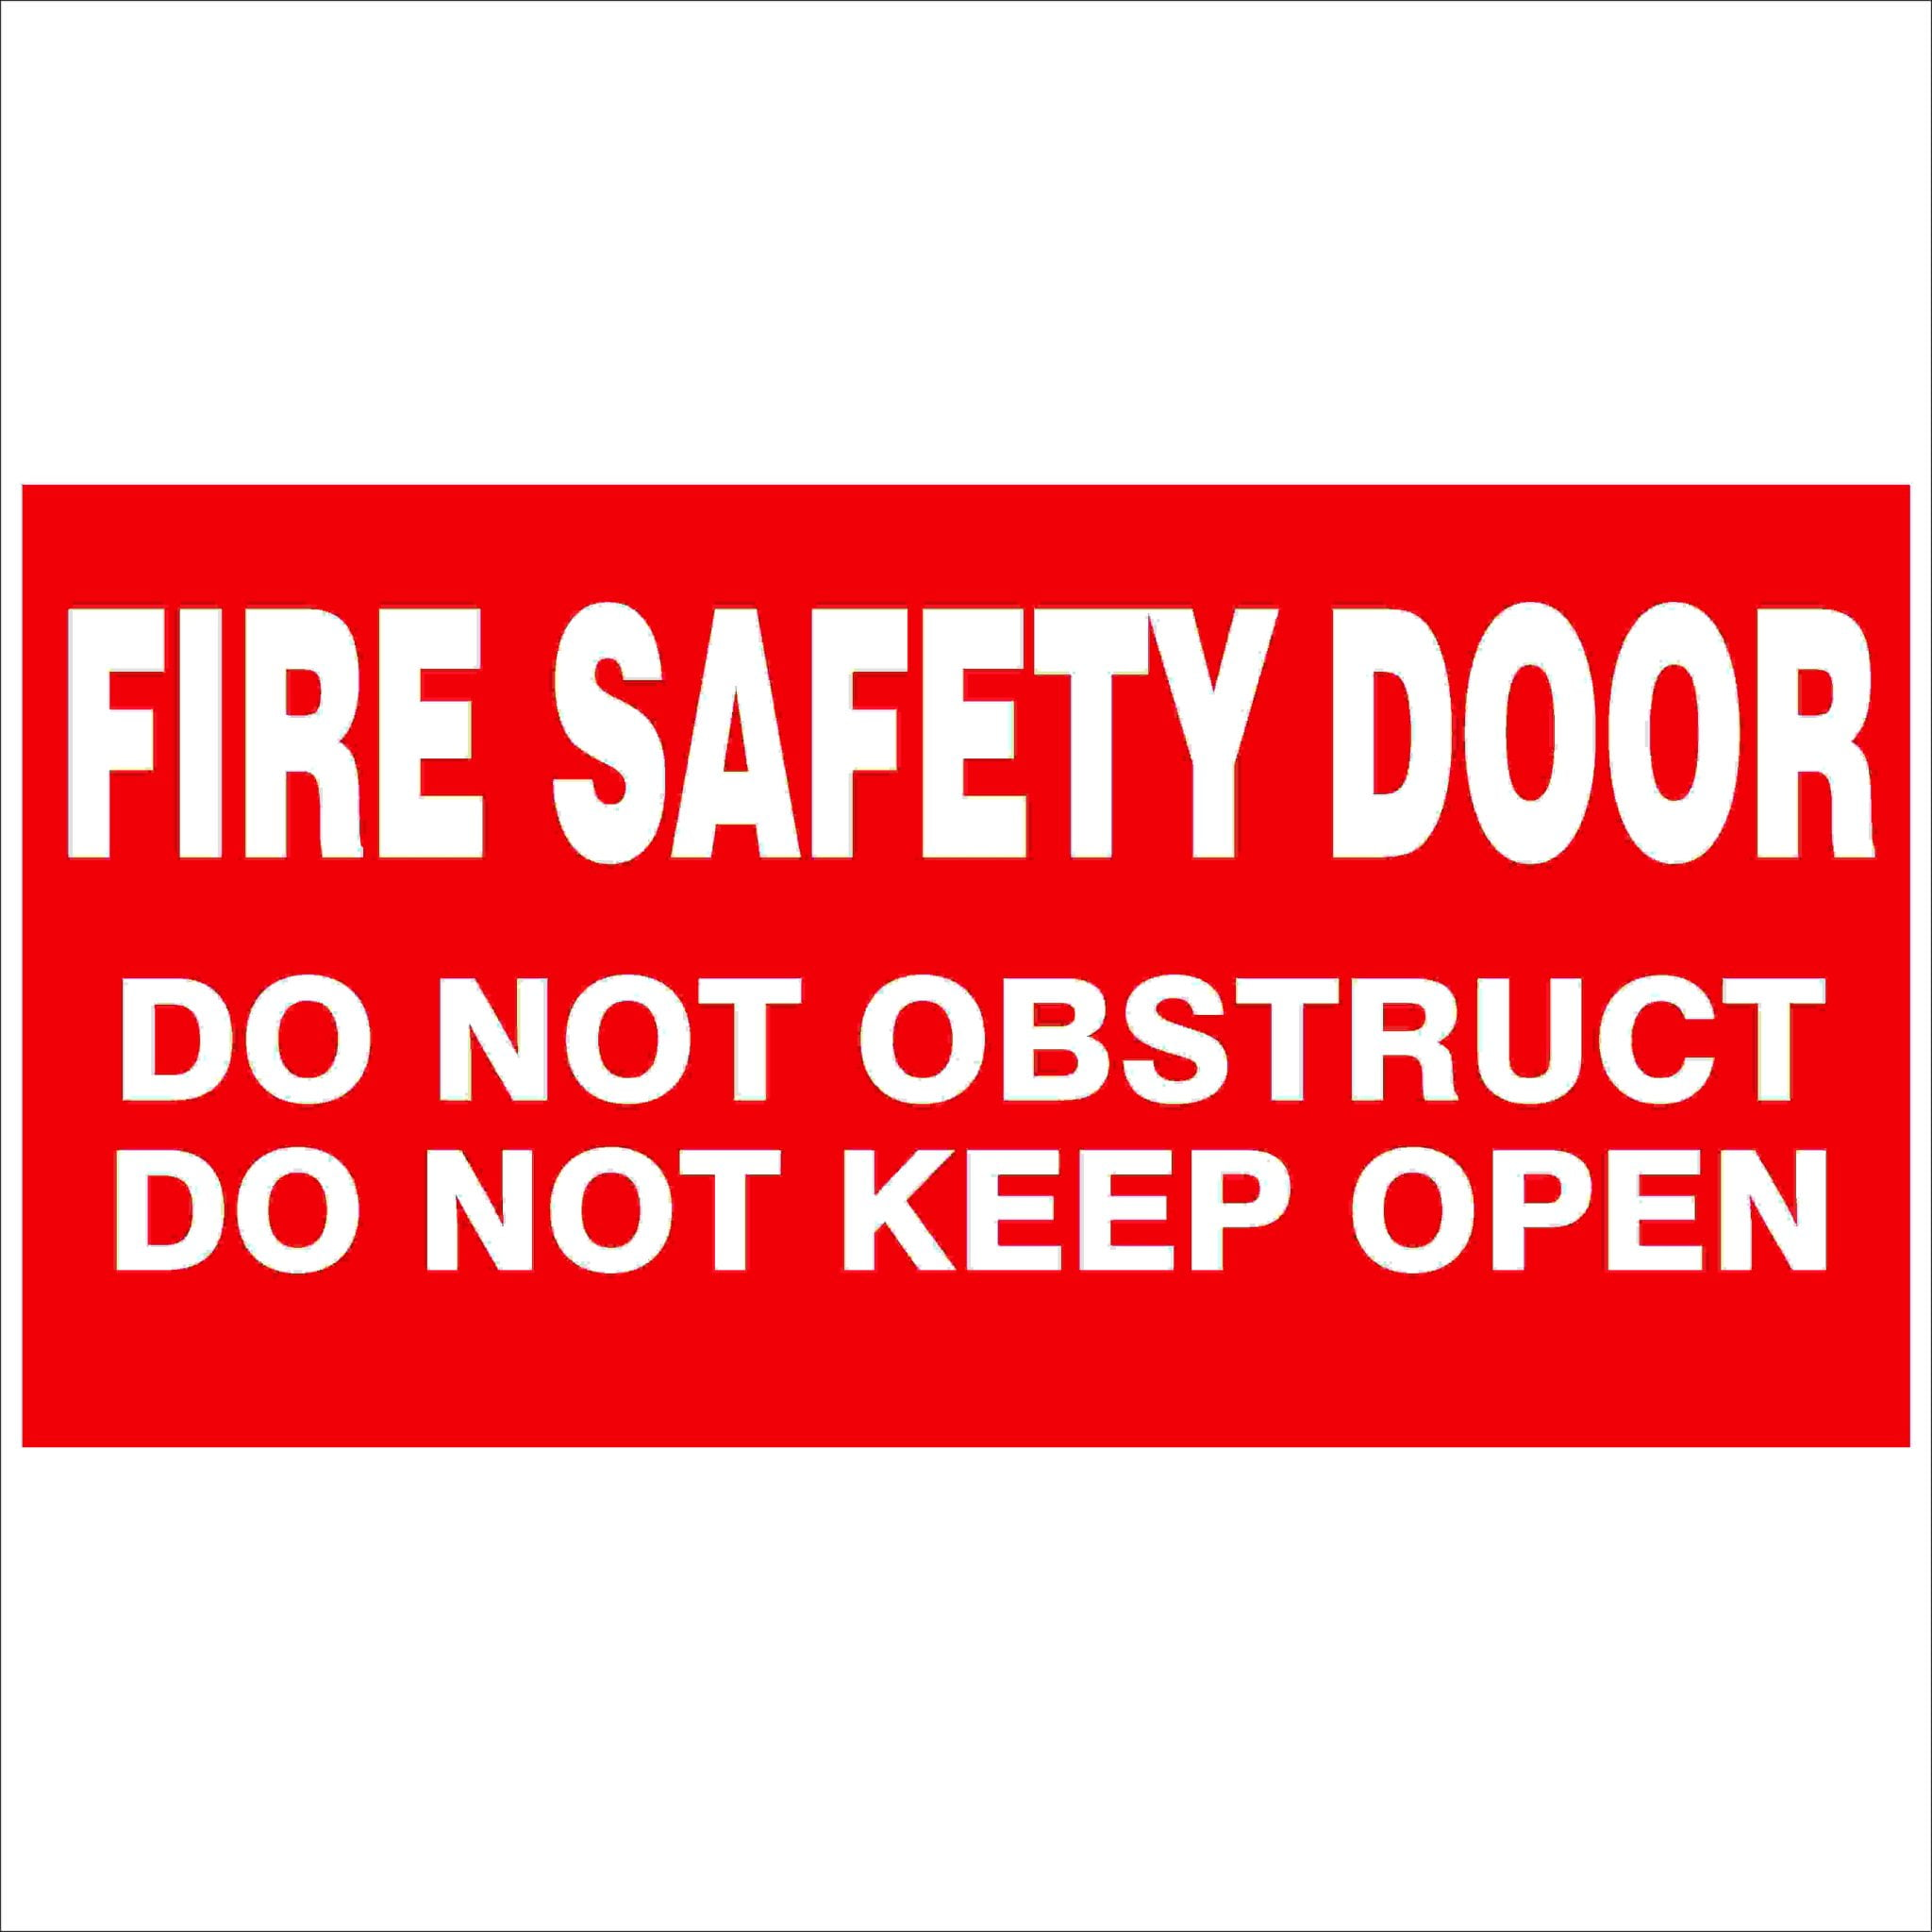 Fire Safety Signs FIRE SAFETY DOOR DO NOT OBSTRUCT DO NOT KEEP OPEN 350